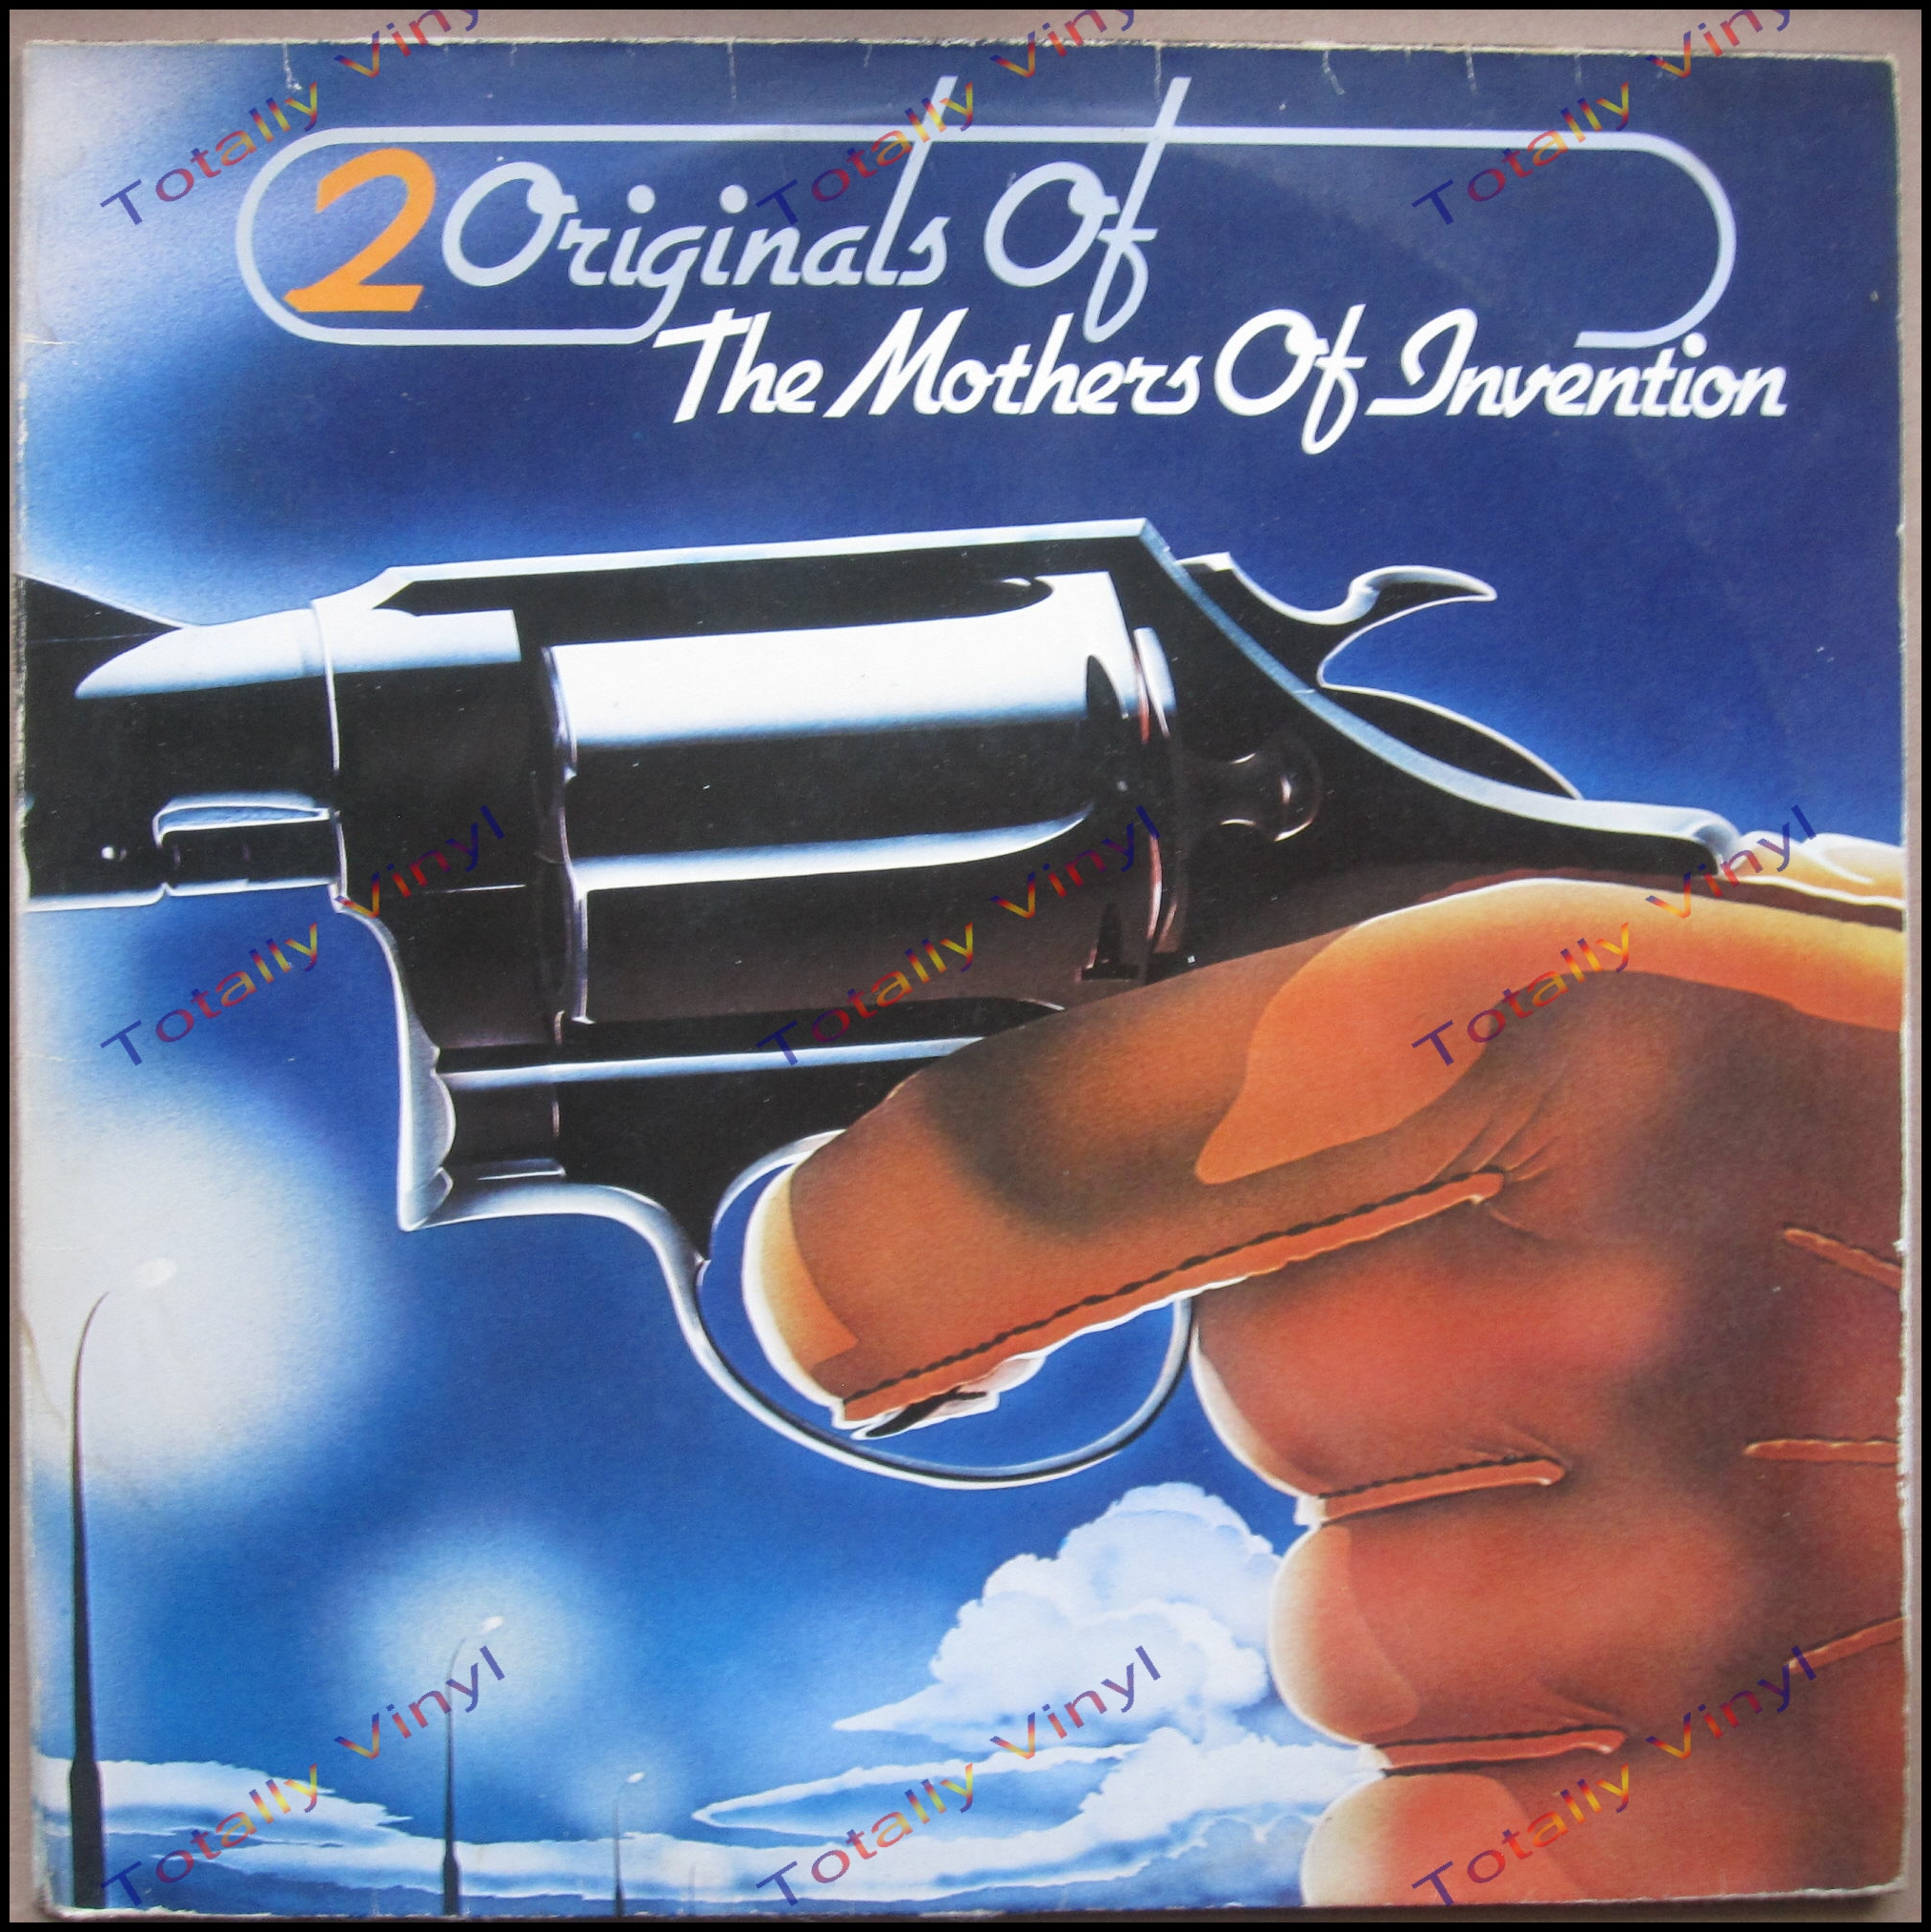 weas_mothers_of_invention_2_originals_of_the_mothers_of_invention_2lp_1.jpg